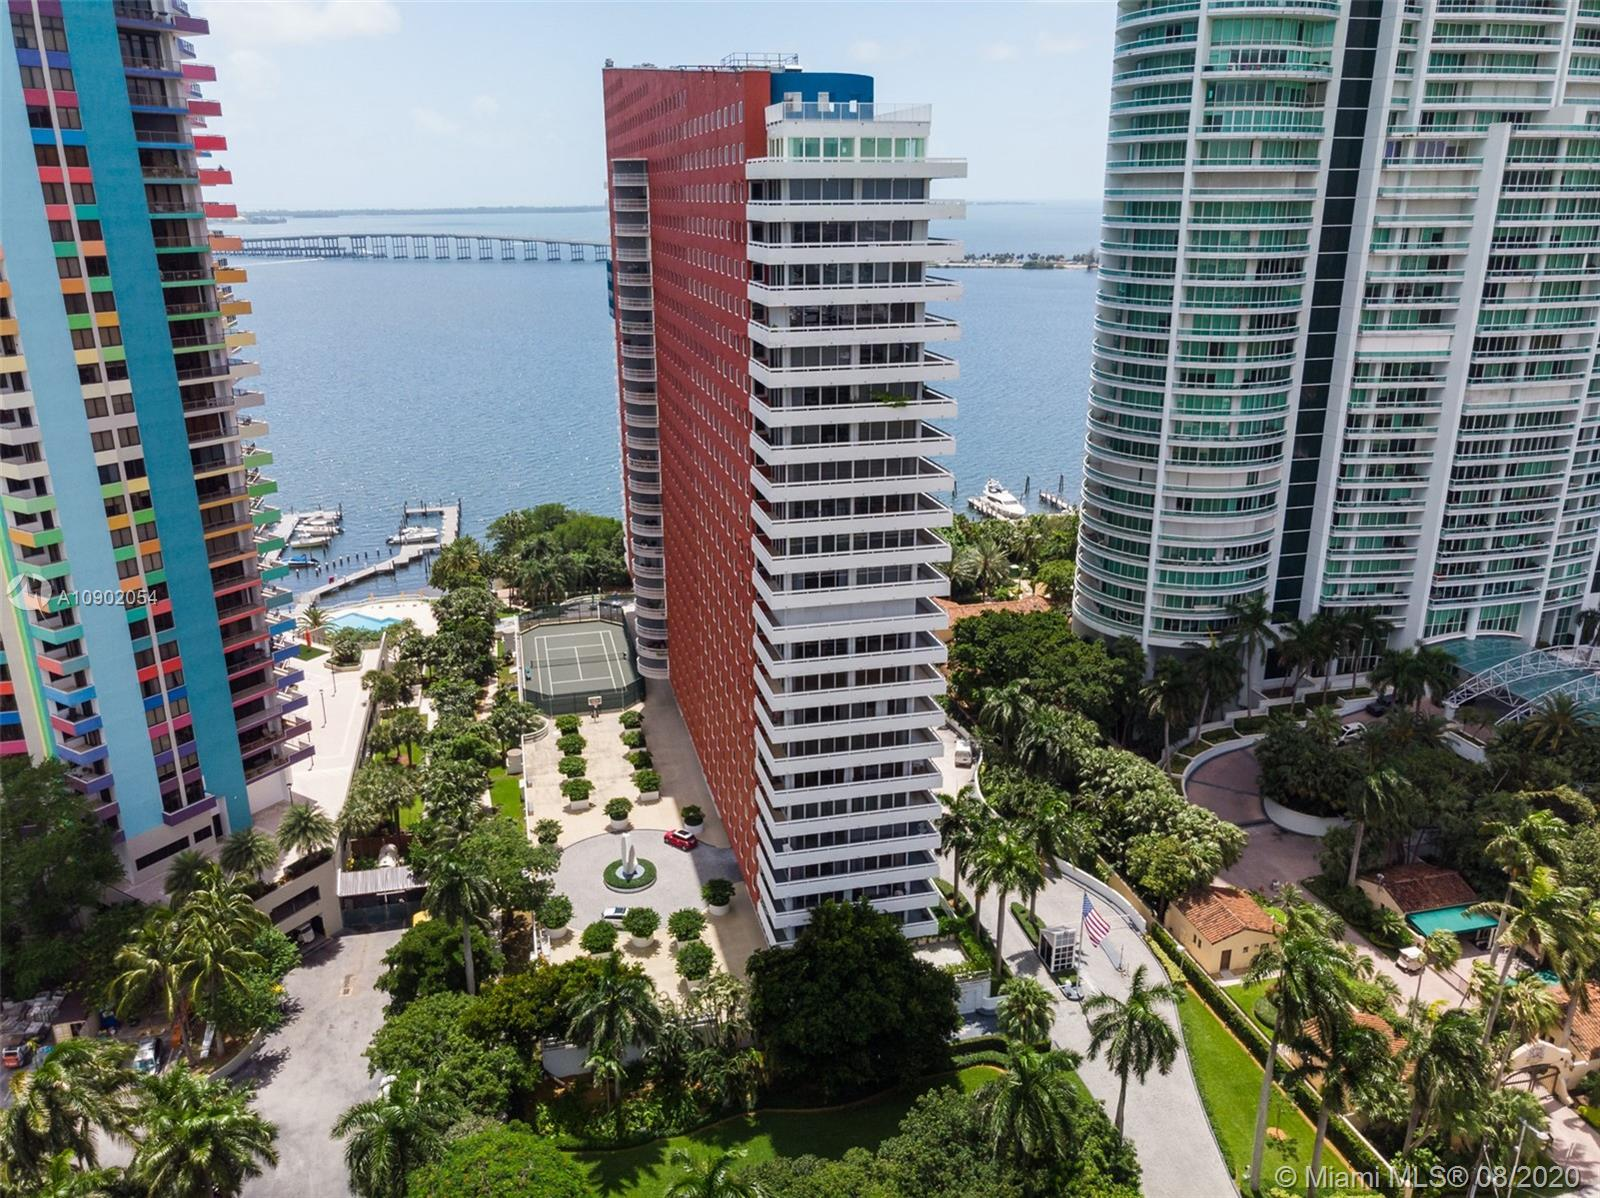 Amazing Penthouse at Imperial at Brickell 2 bedrooms & 2.5 bathrooms. Overlooking Biscayne Bay,  bes